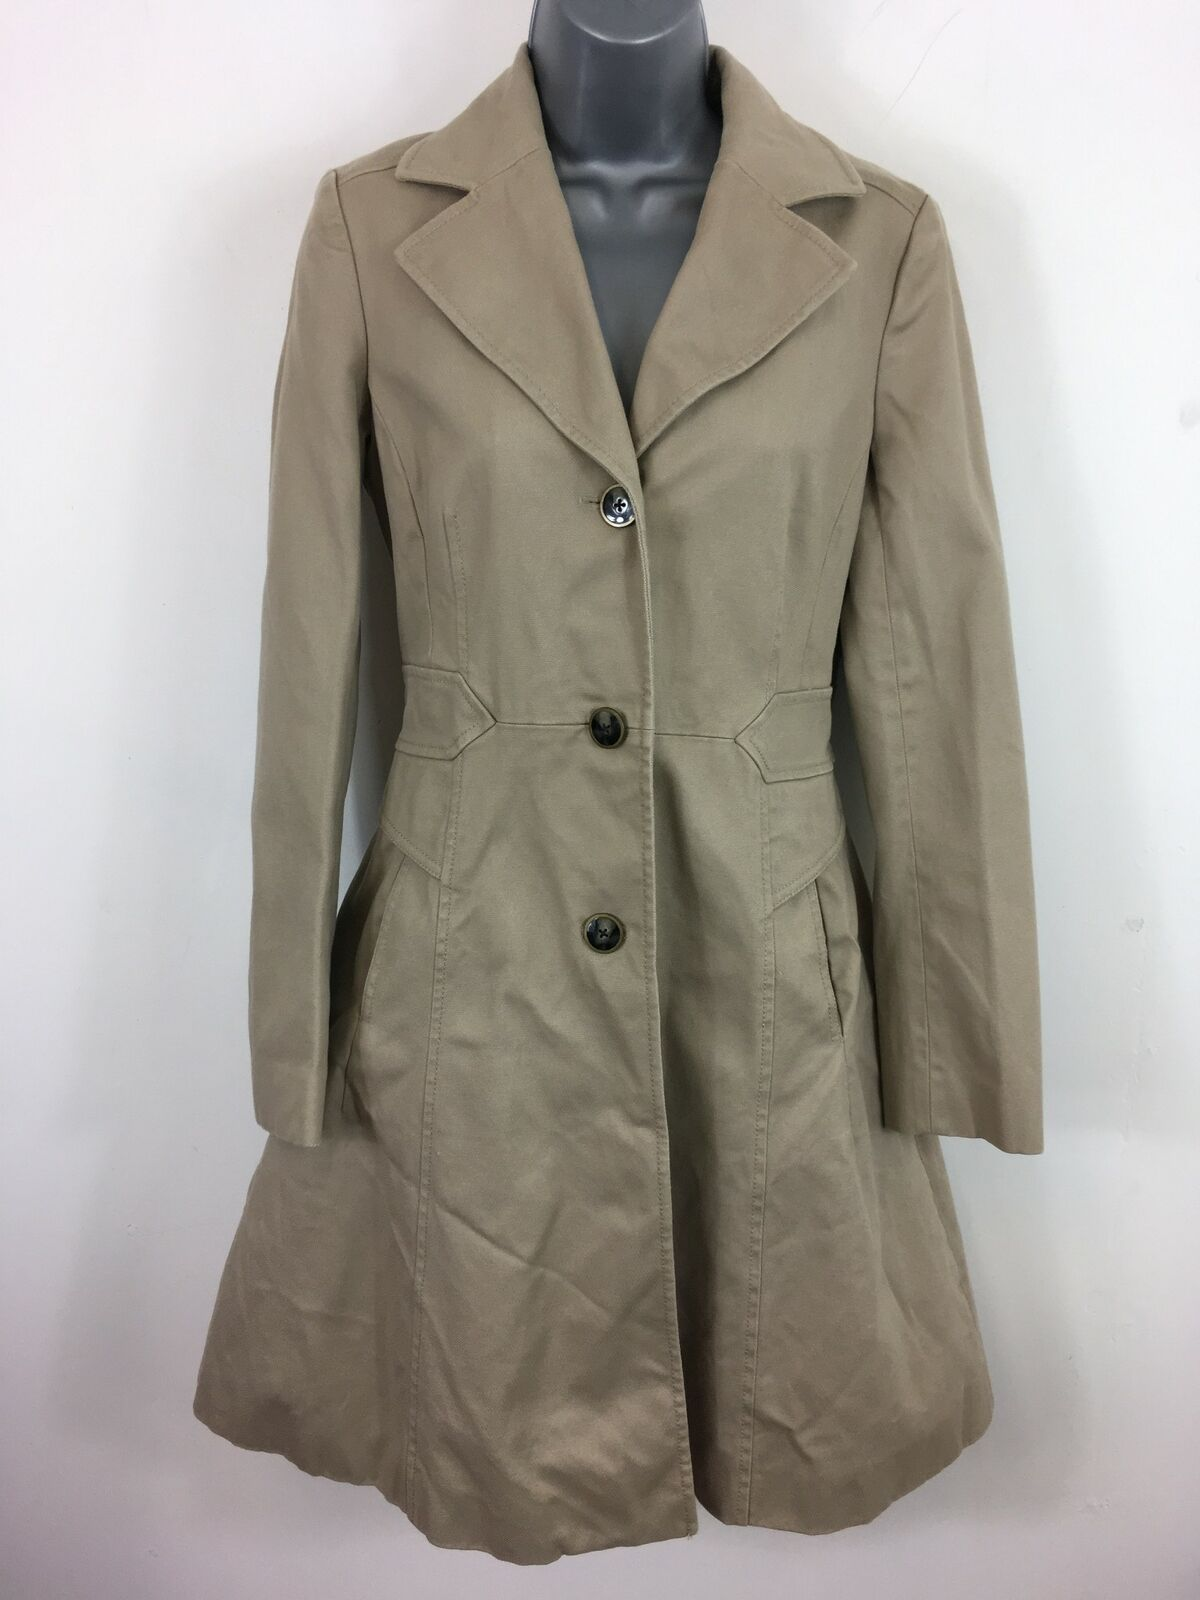 WOMENS REISS NATURAL BEIGE BUTTON UP SMART FITTED FLARE LONG SMART COAT SMALL